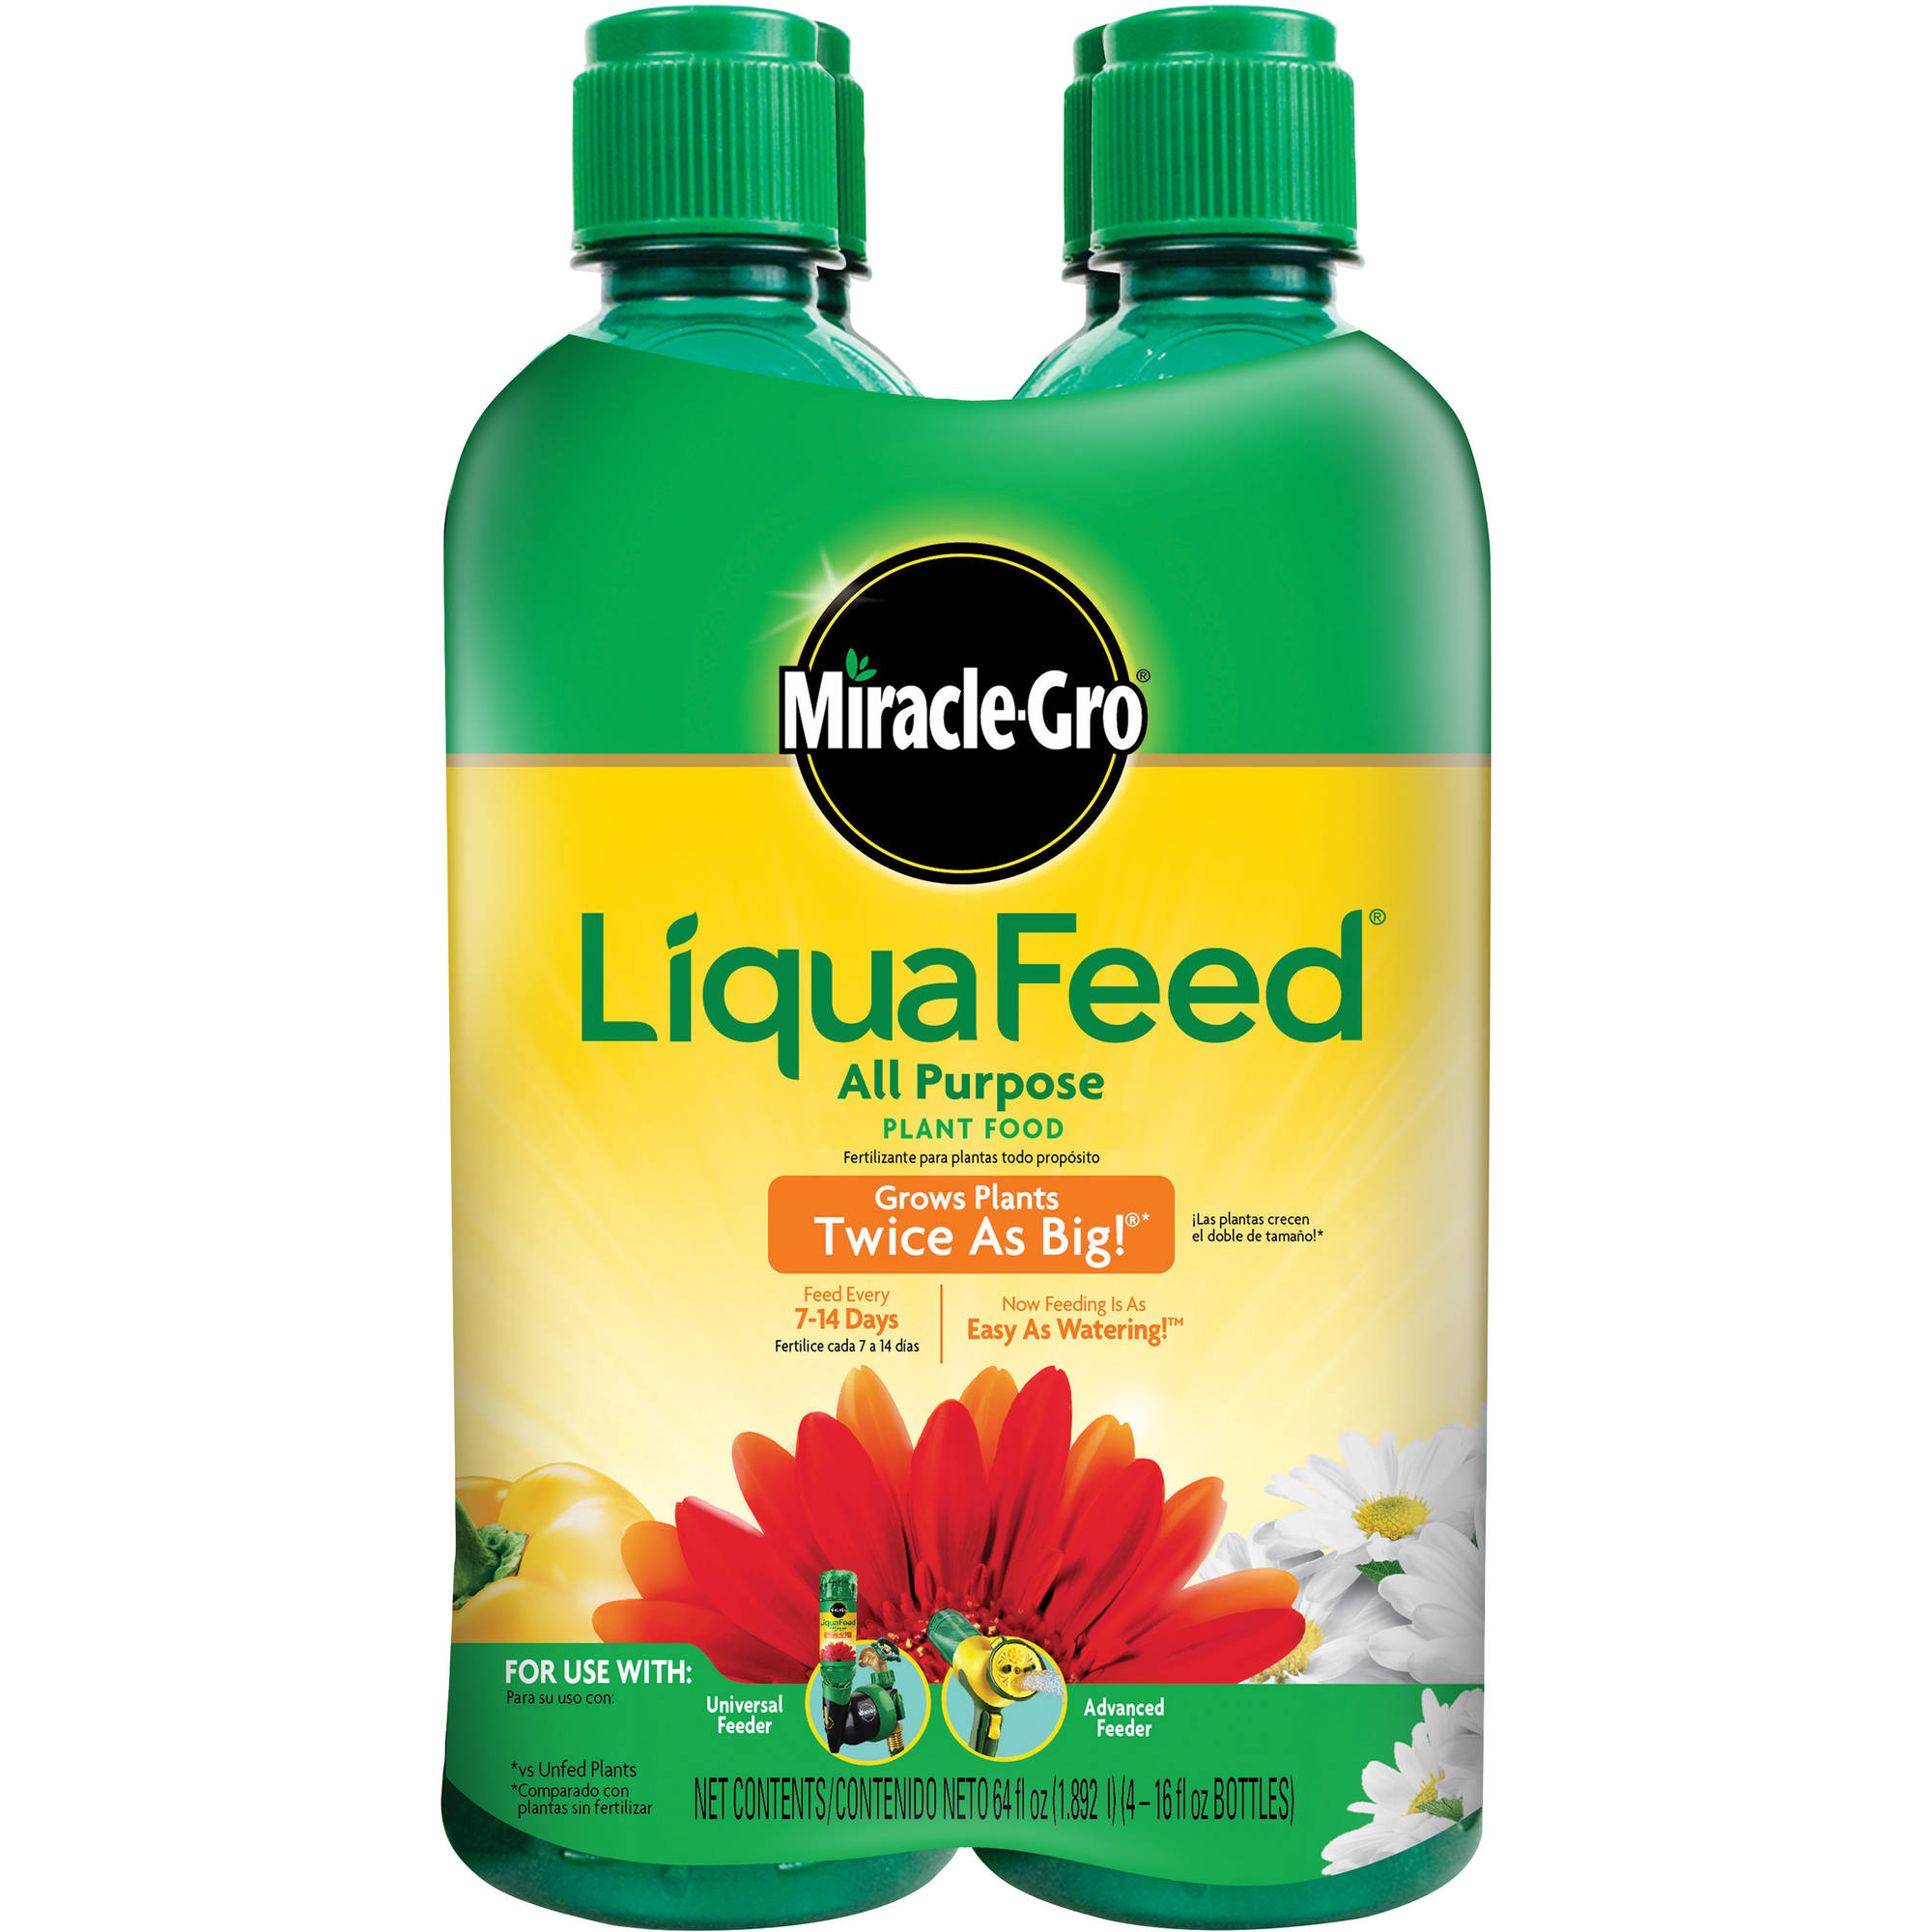 Miracle-Gro LiquaFeed All Purpose Plant Food, 64 oz